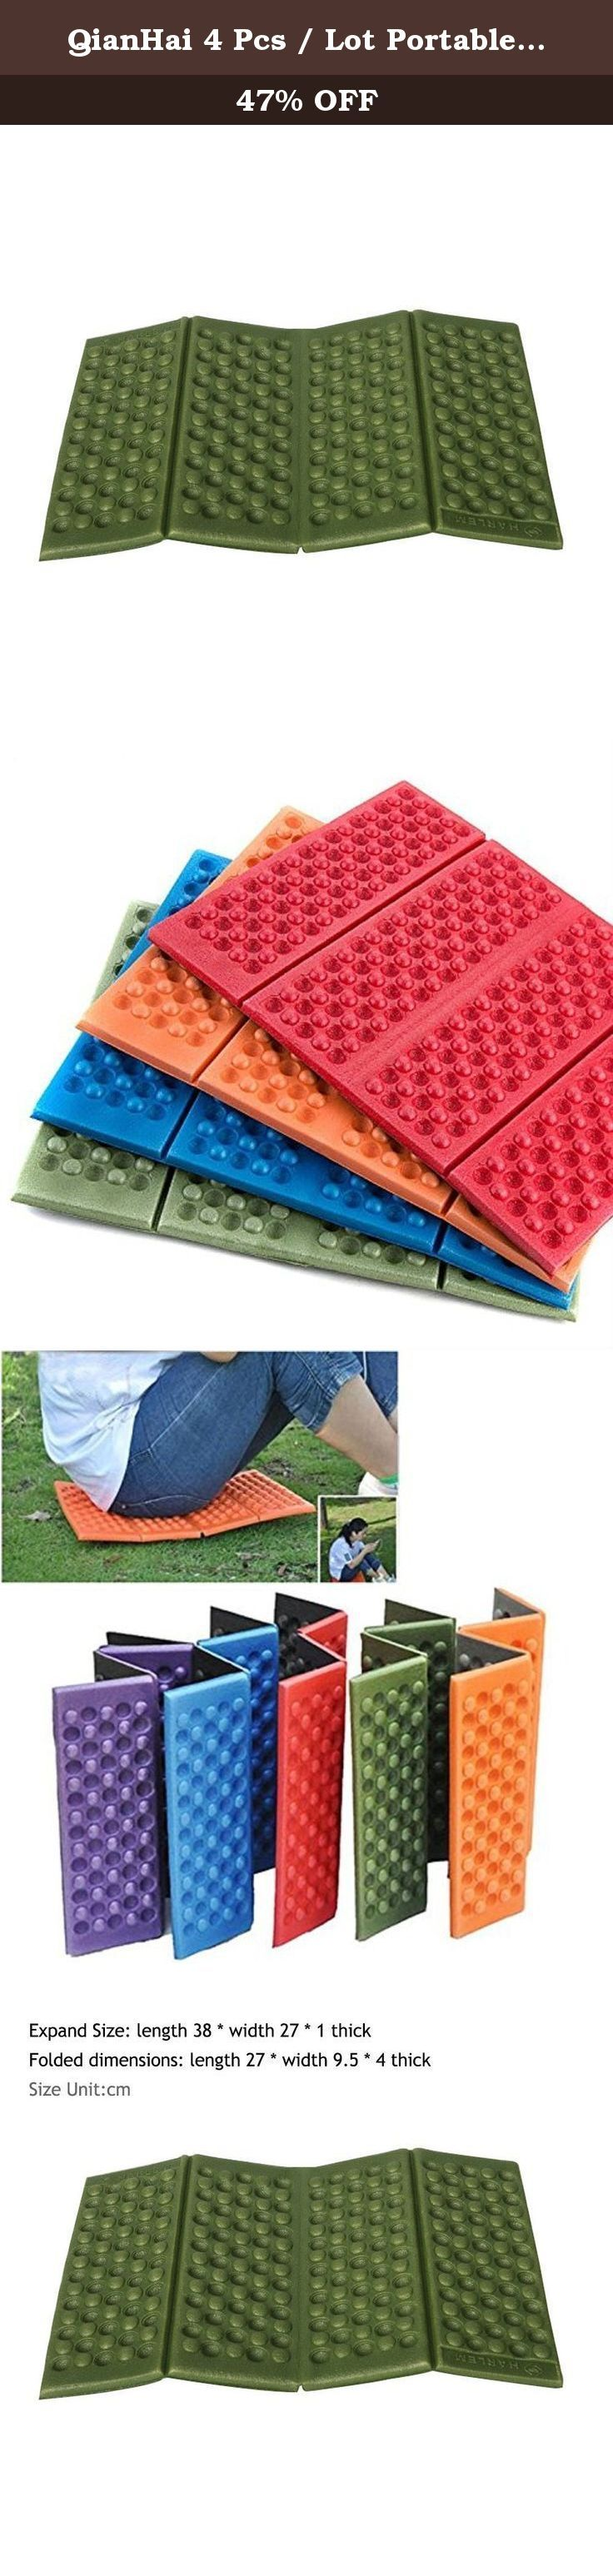 QianHai 4 Pcs / Lot Portable Folding Foam Waterproof Cushion Seat Pads for outdoor camping and Picnic Chair Mat Pad(green). Description 1.The design of mobile is not only comfortable to sit as well as massage and ventilation effect.. 2.expanding Size: 38 cm (L) * 27cm (W) * 1 cm (thickness). 3.Folded dimensions: 27cm (L) * 9.5 cm (W) * 4 cm (thick). 4.Material: XPE. 5.Net Weight: 35g. 6.all pads are independent with a plastic packaging. 7.Color: green. 8.Package include: 1* foldable foam…